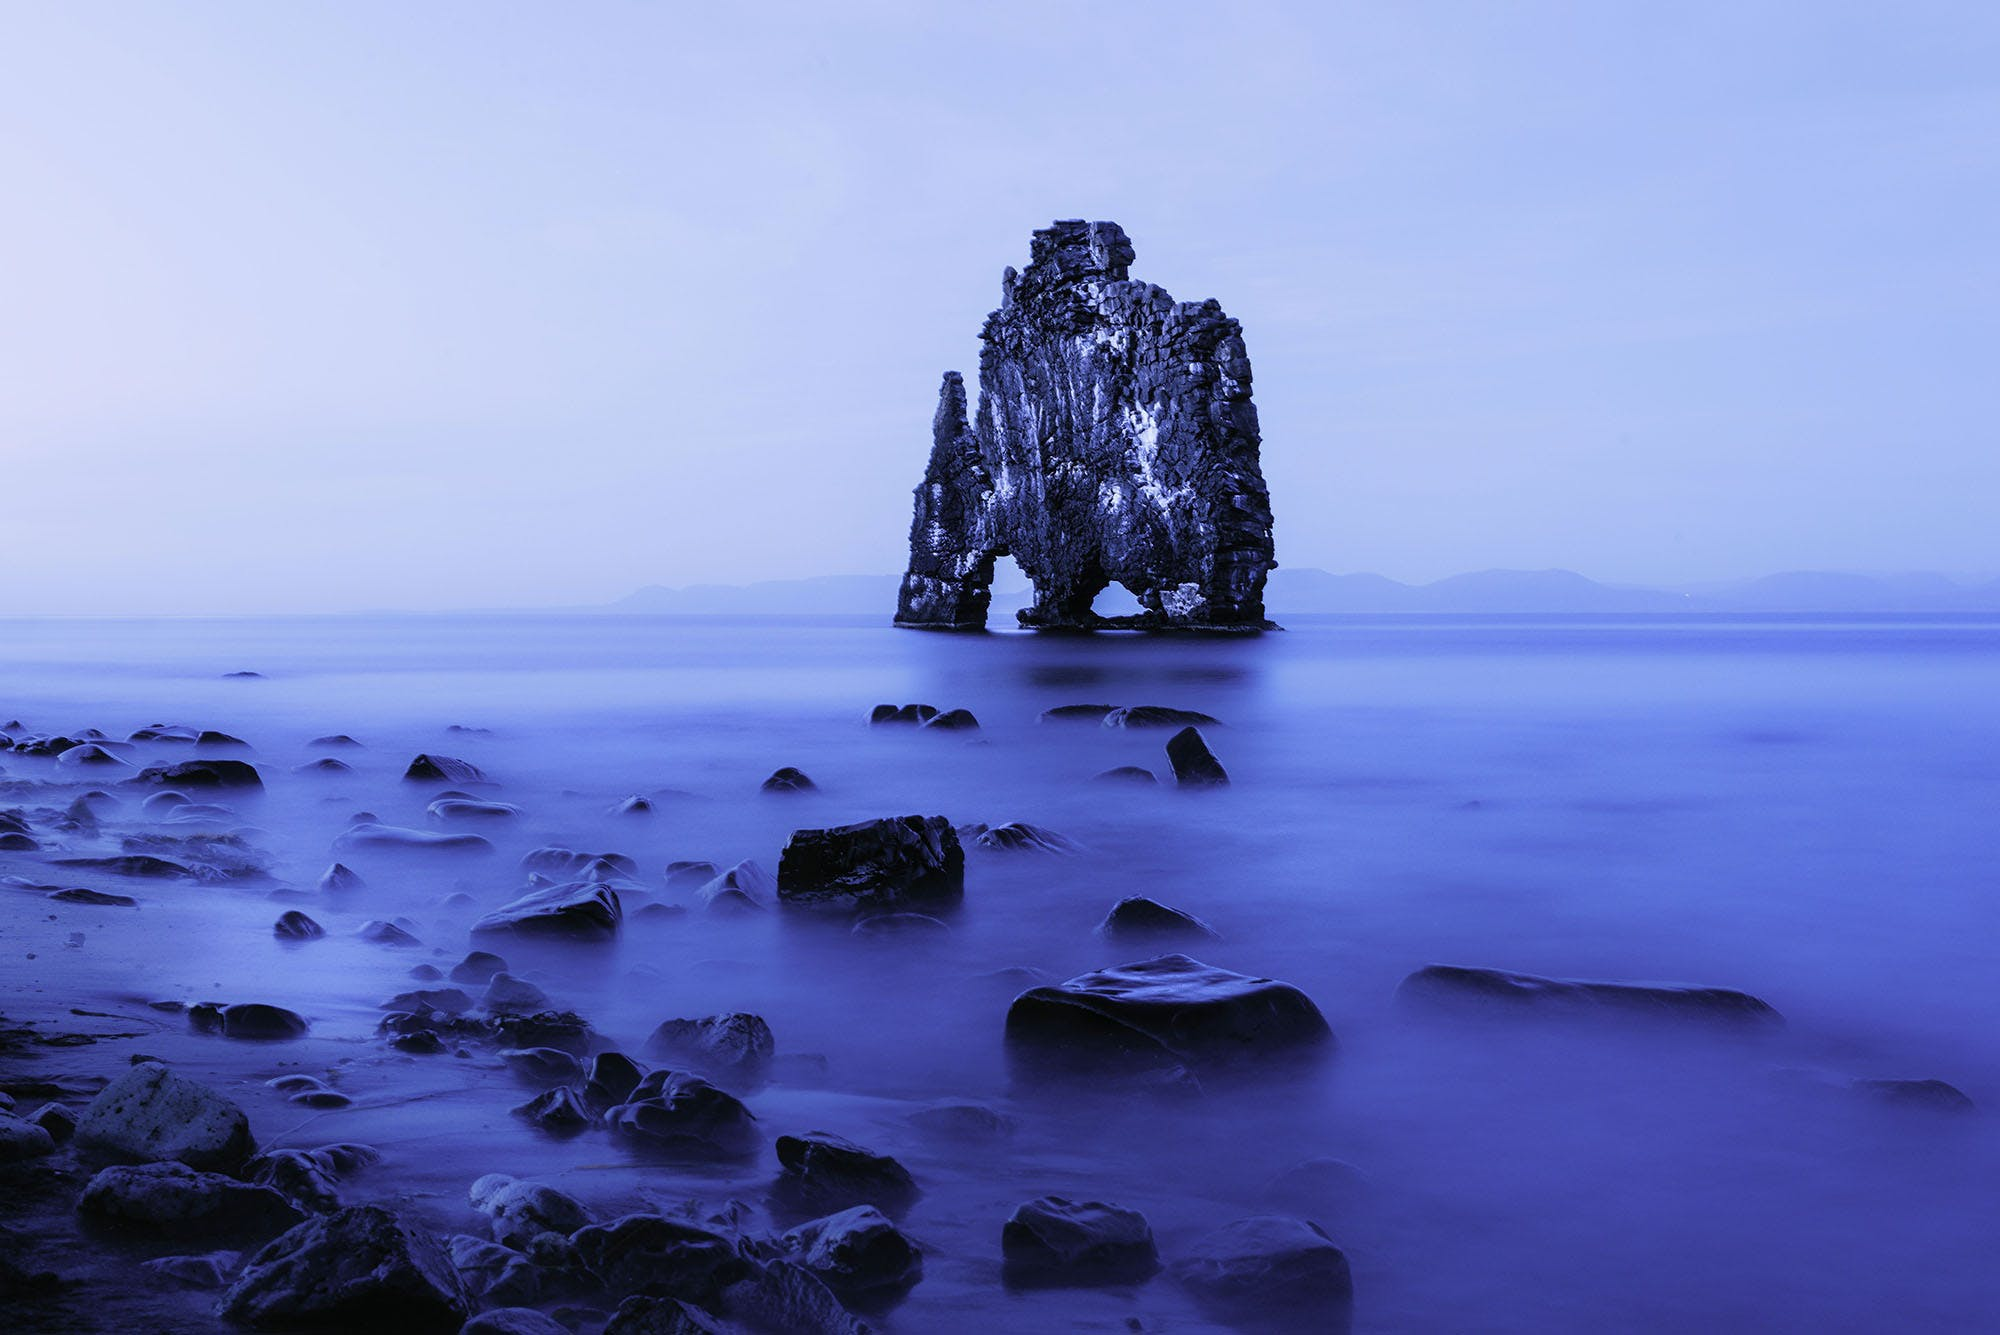 Rock Formation in Middle of Body of Water